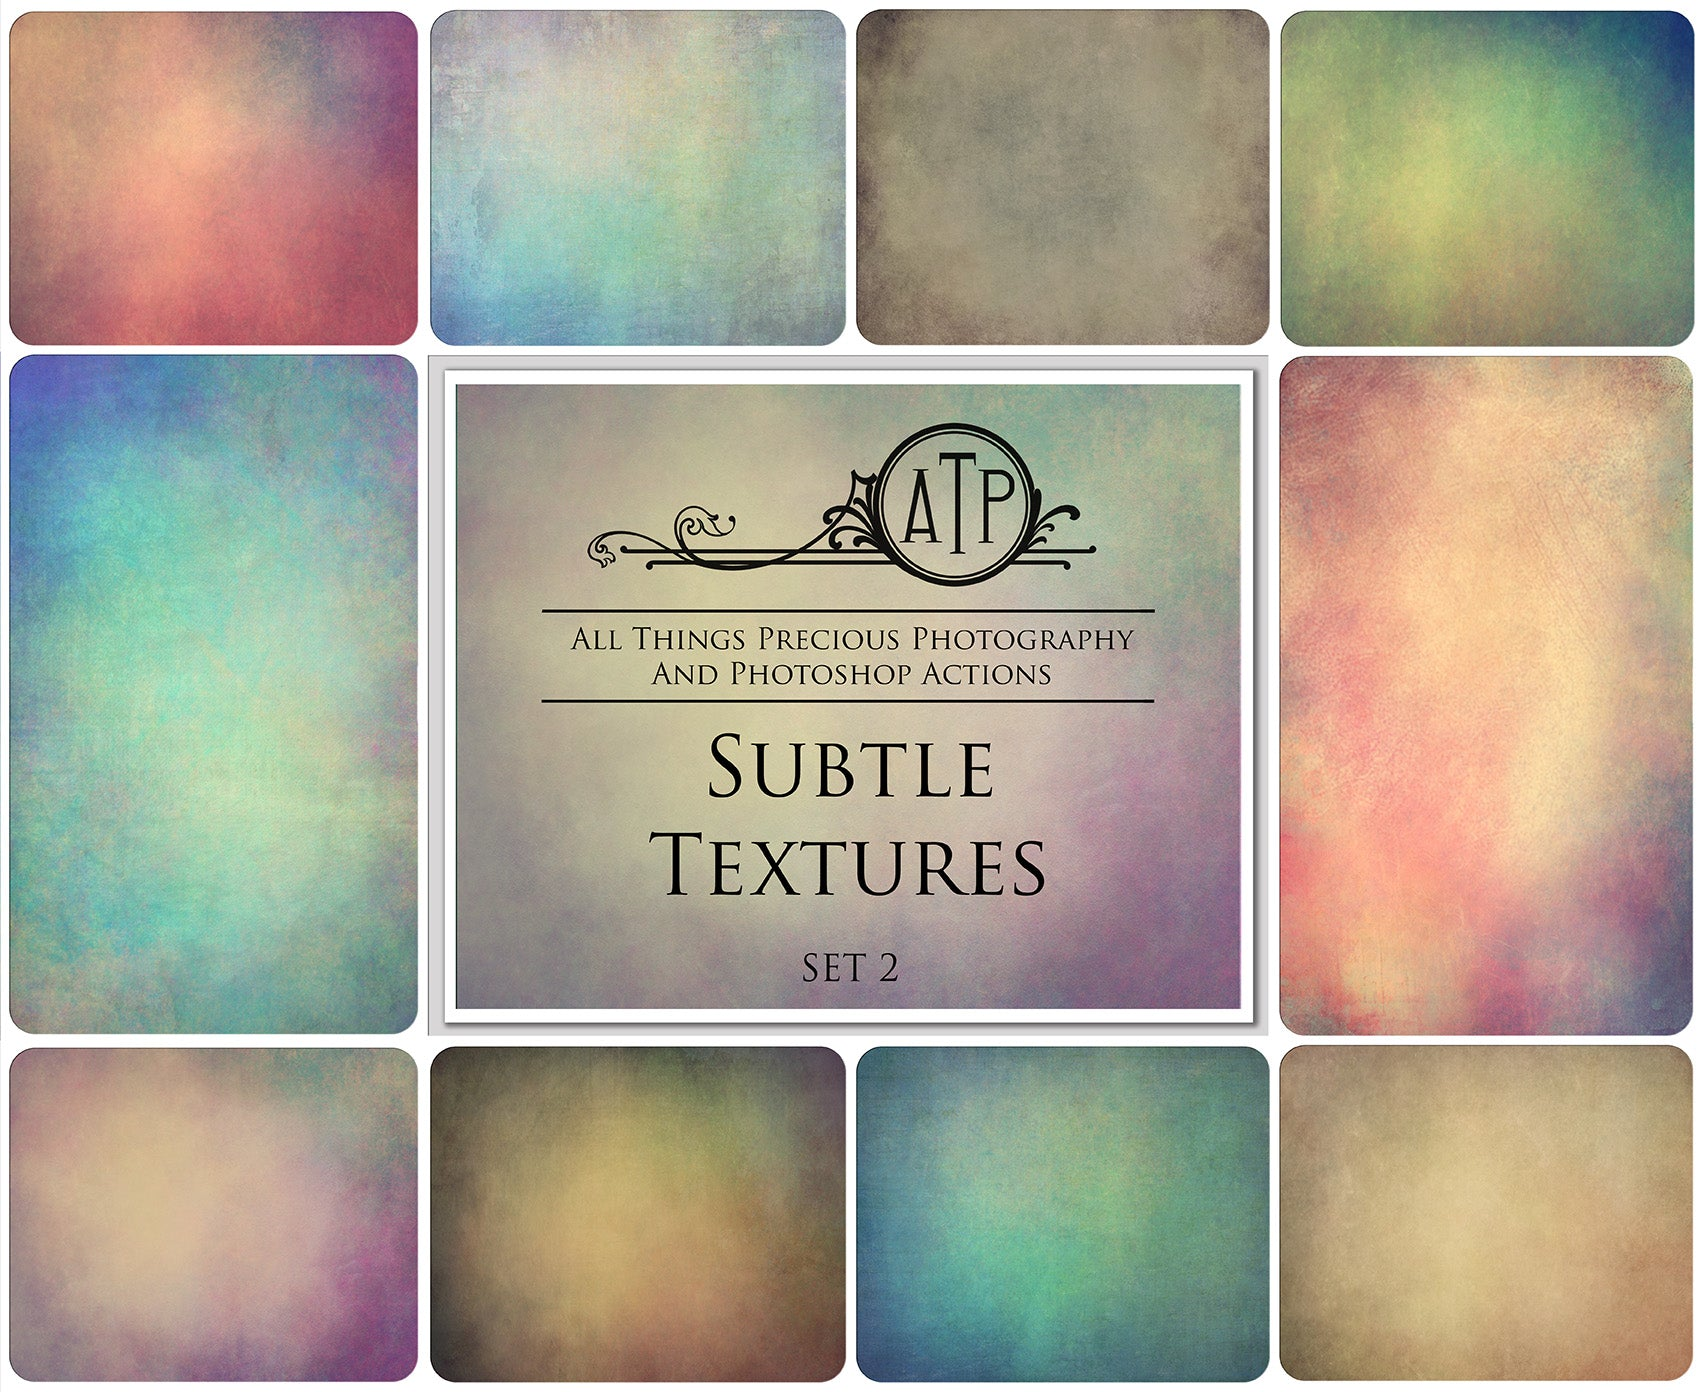 10 Fine Art TEXTURES - SUBTLE Set 2